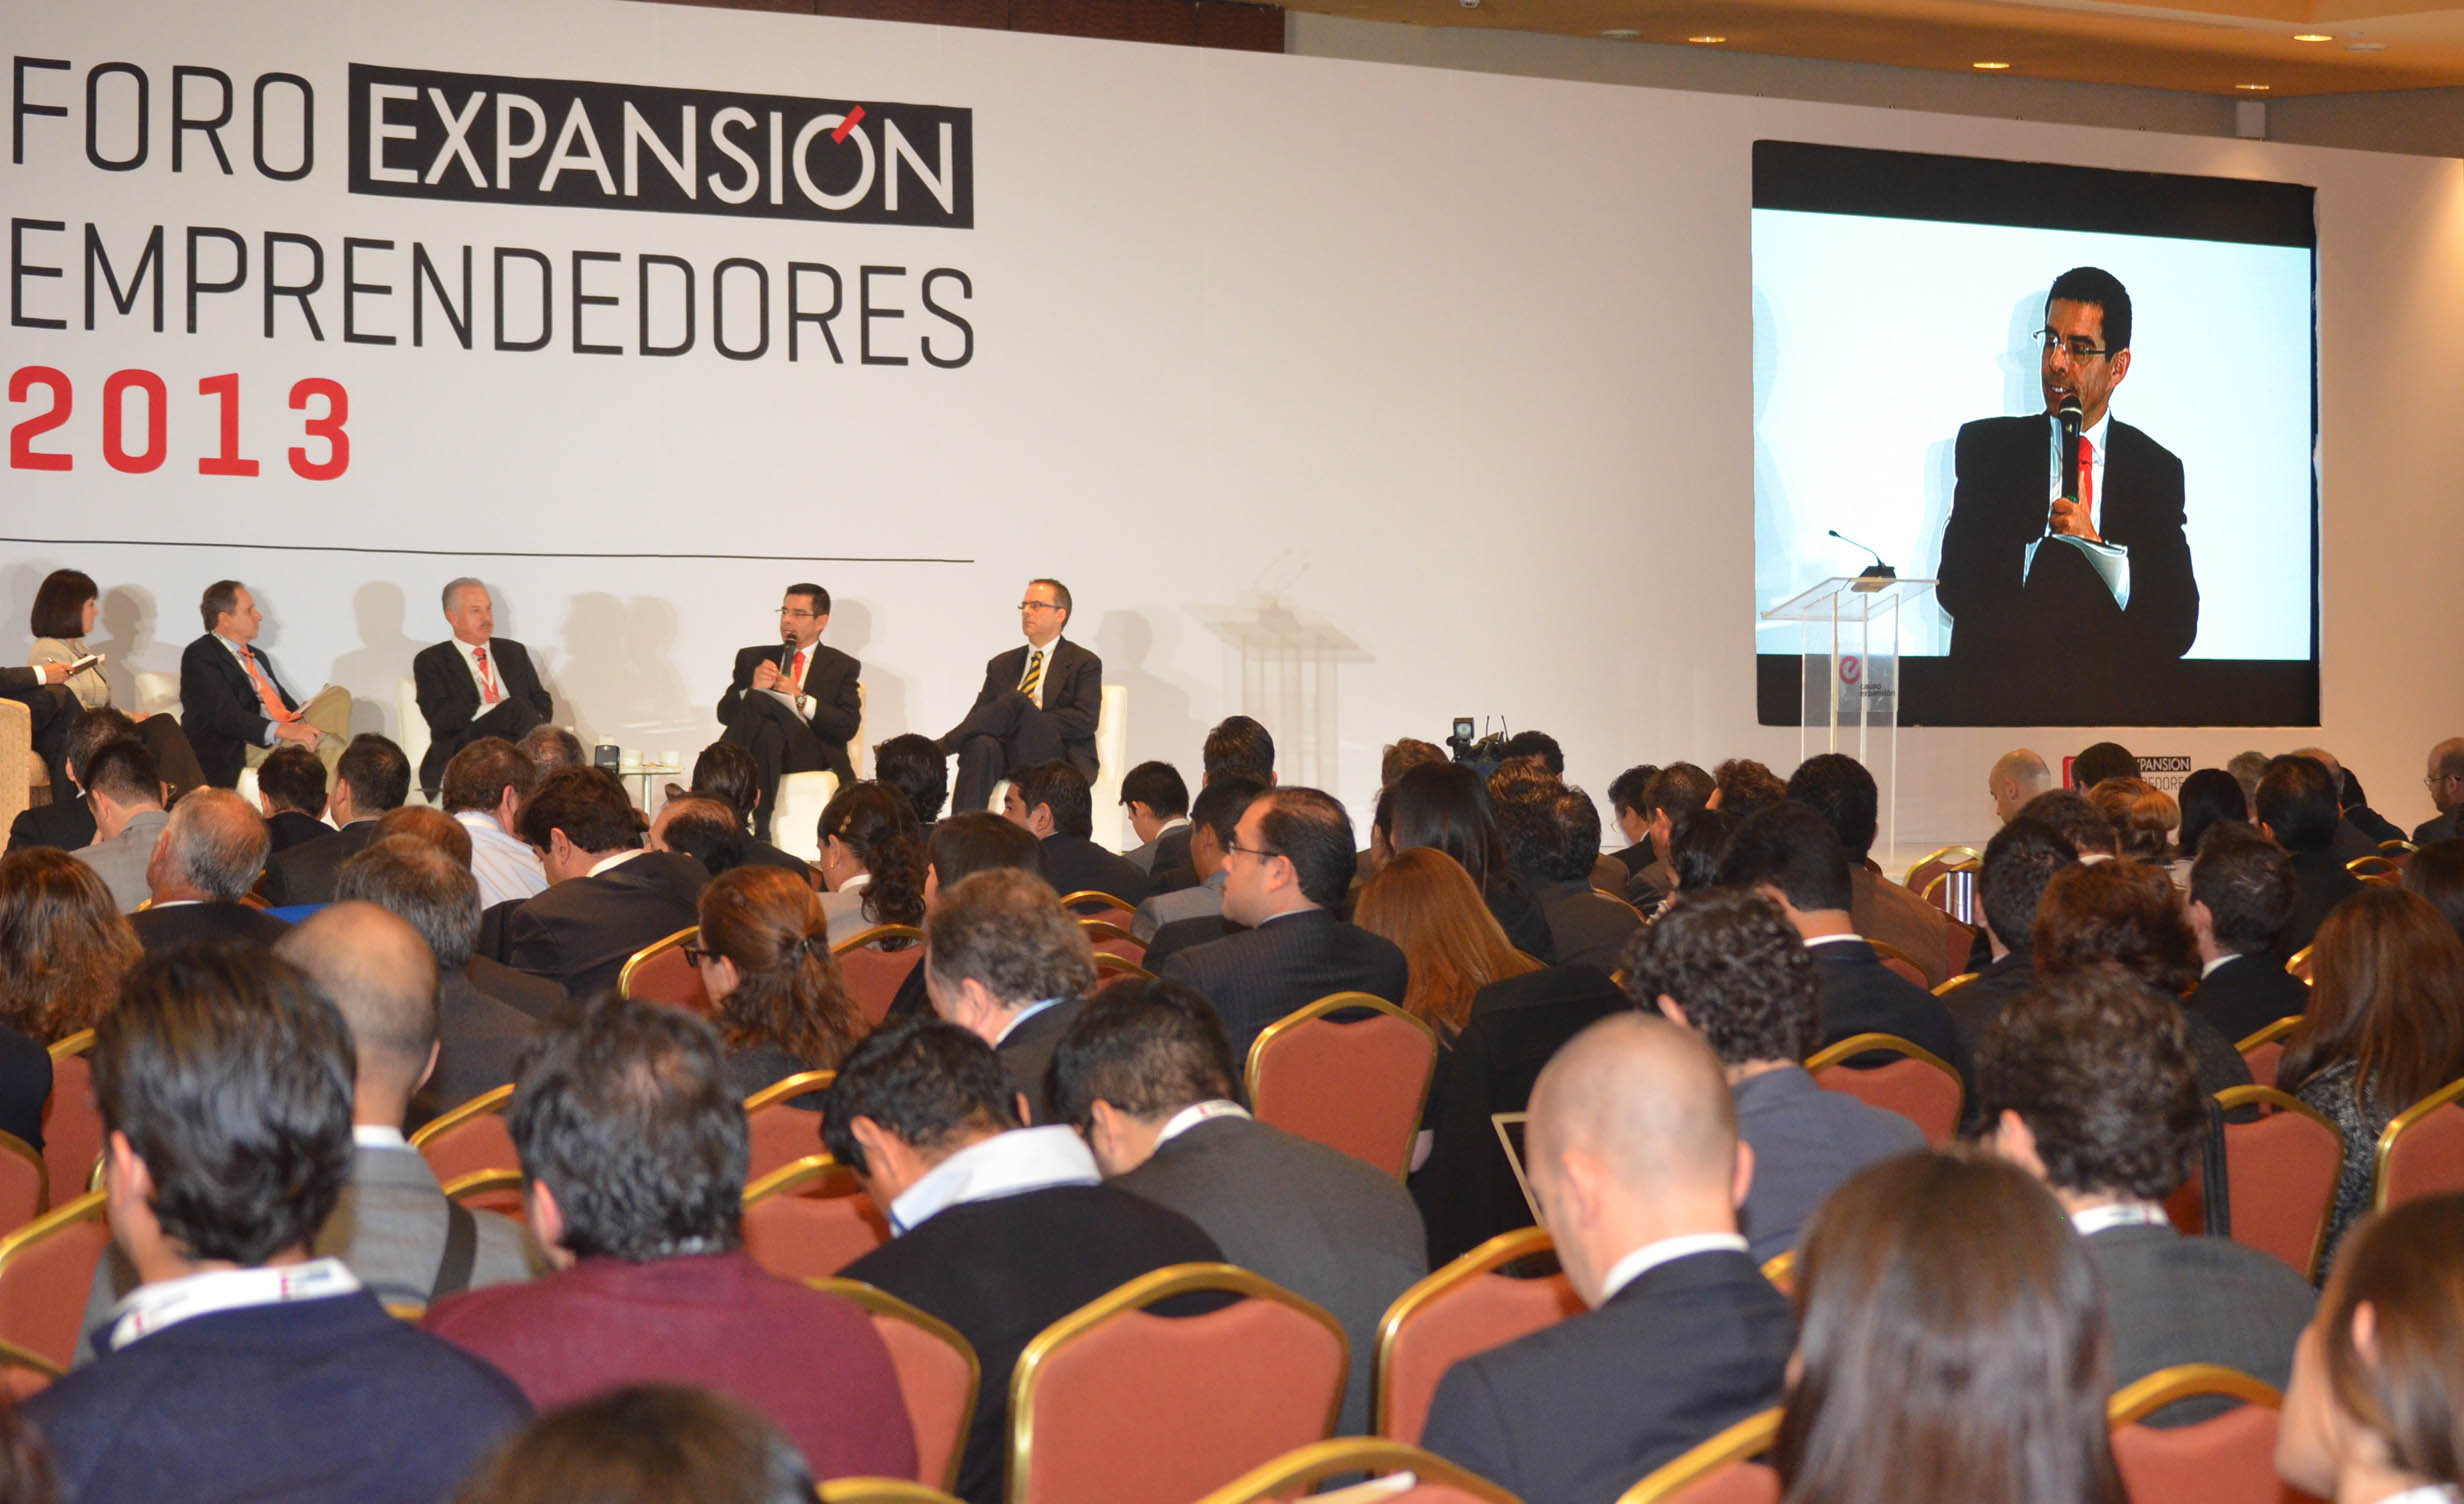 Foro emprendedores expansin 13